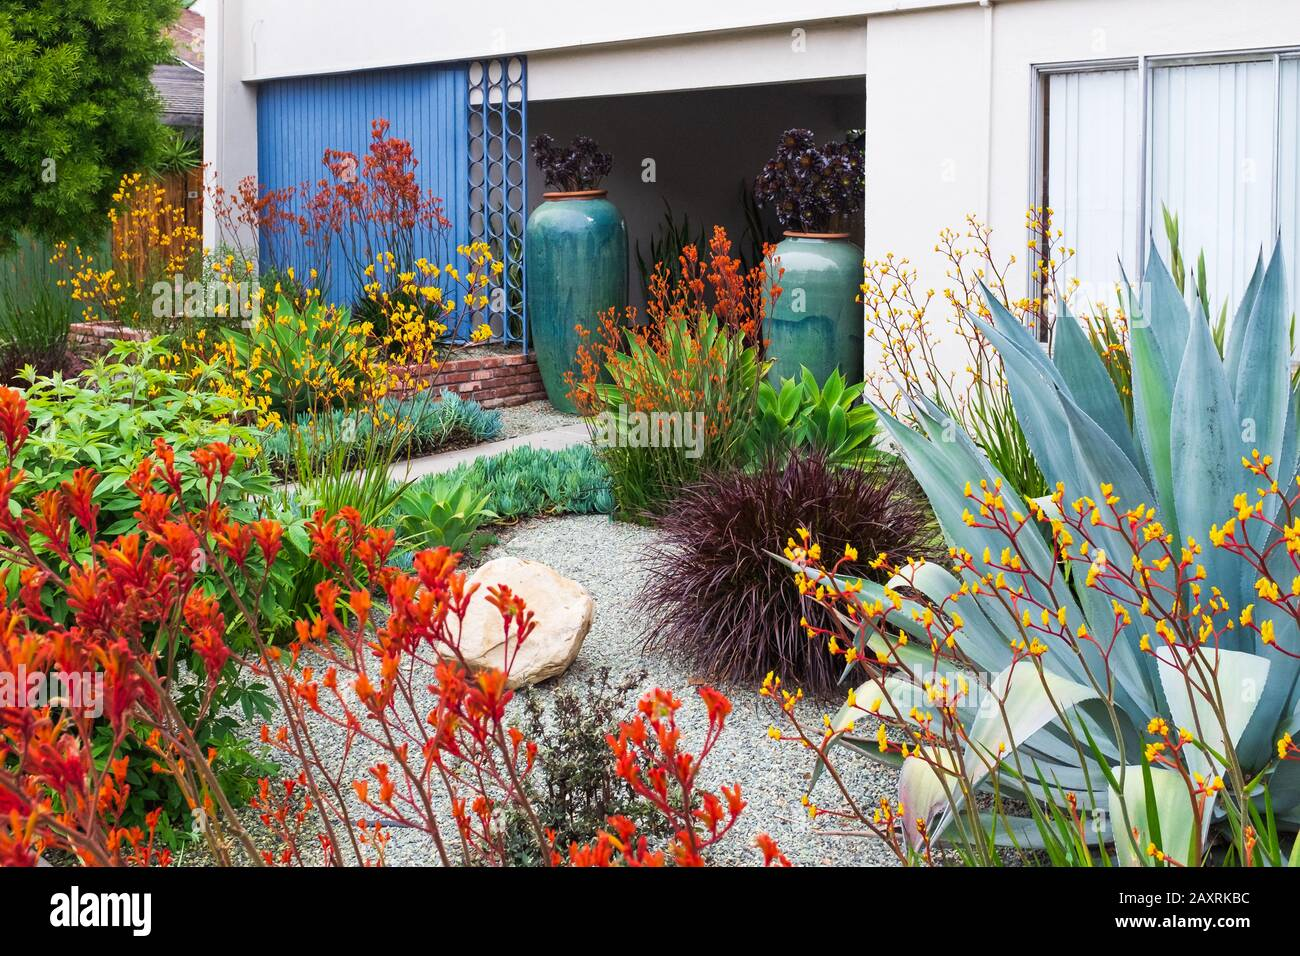 Southern California Garden And Landscape Design For An Apartment